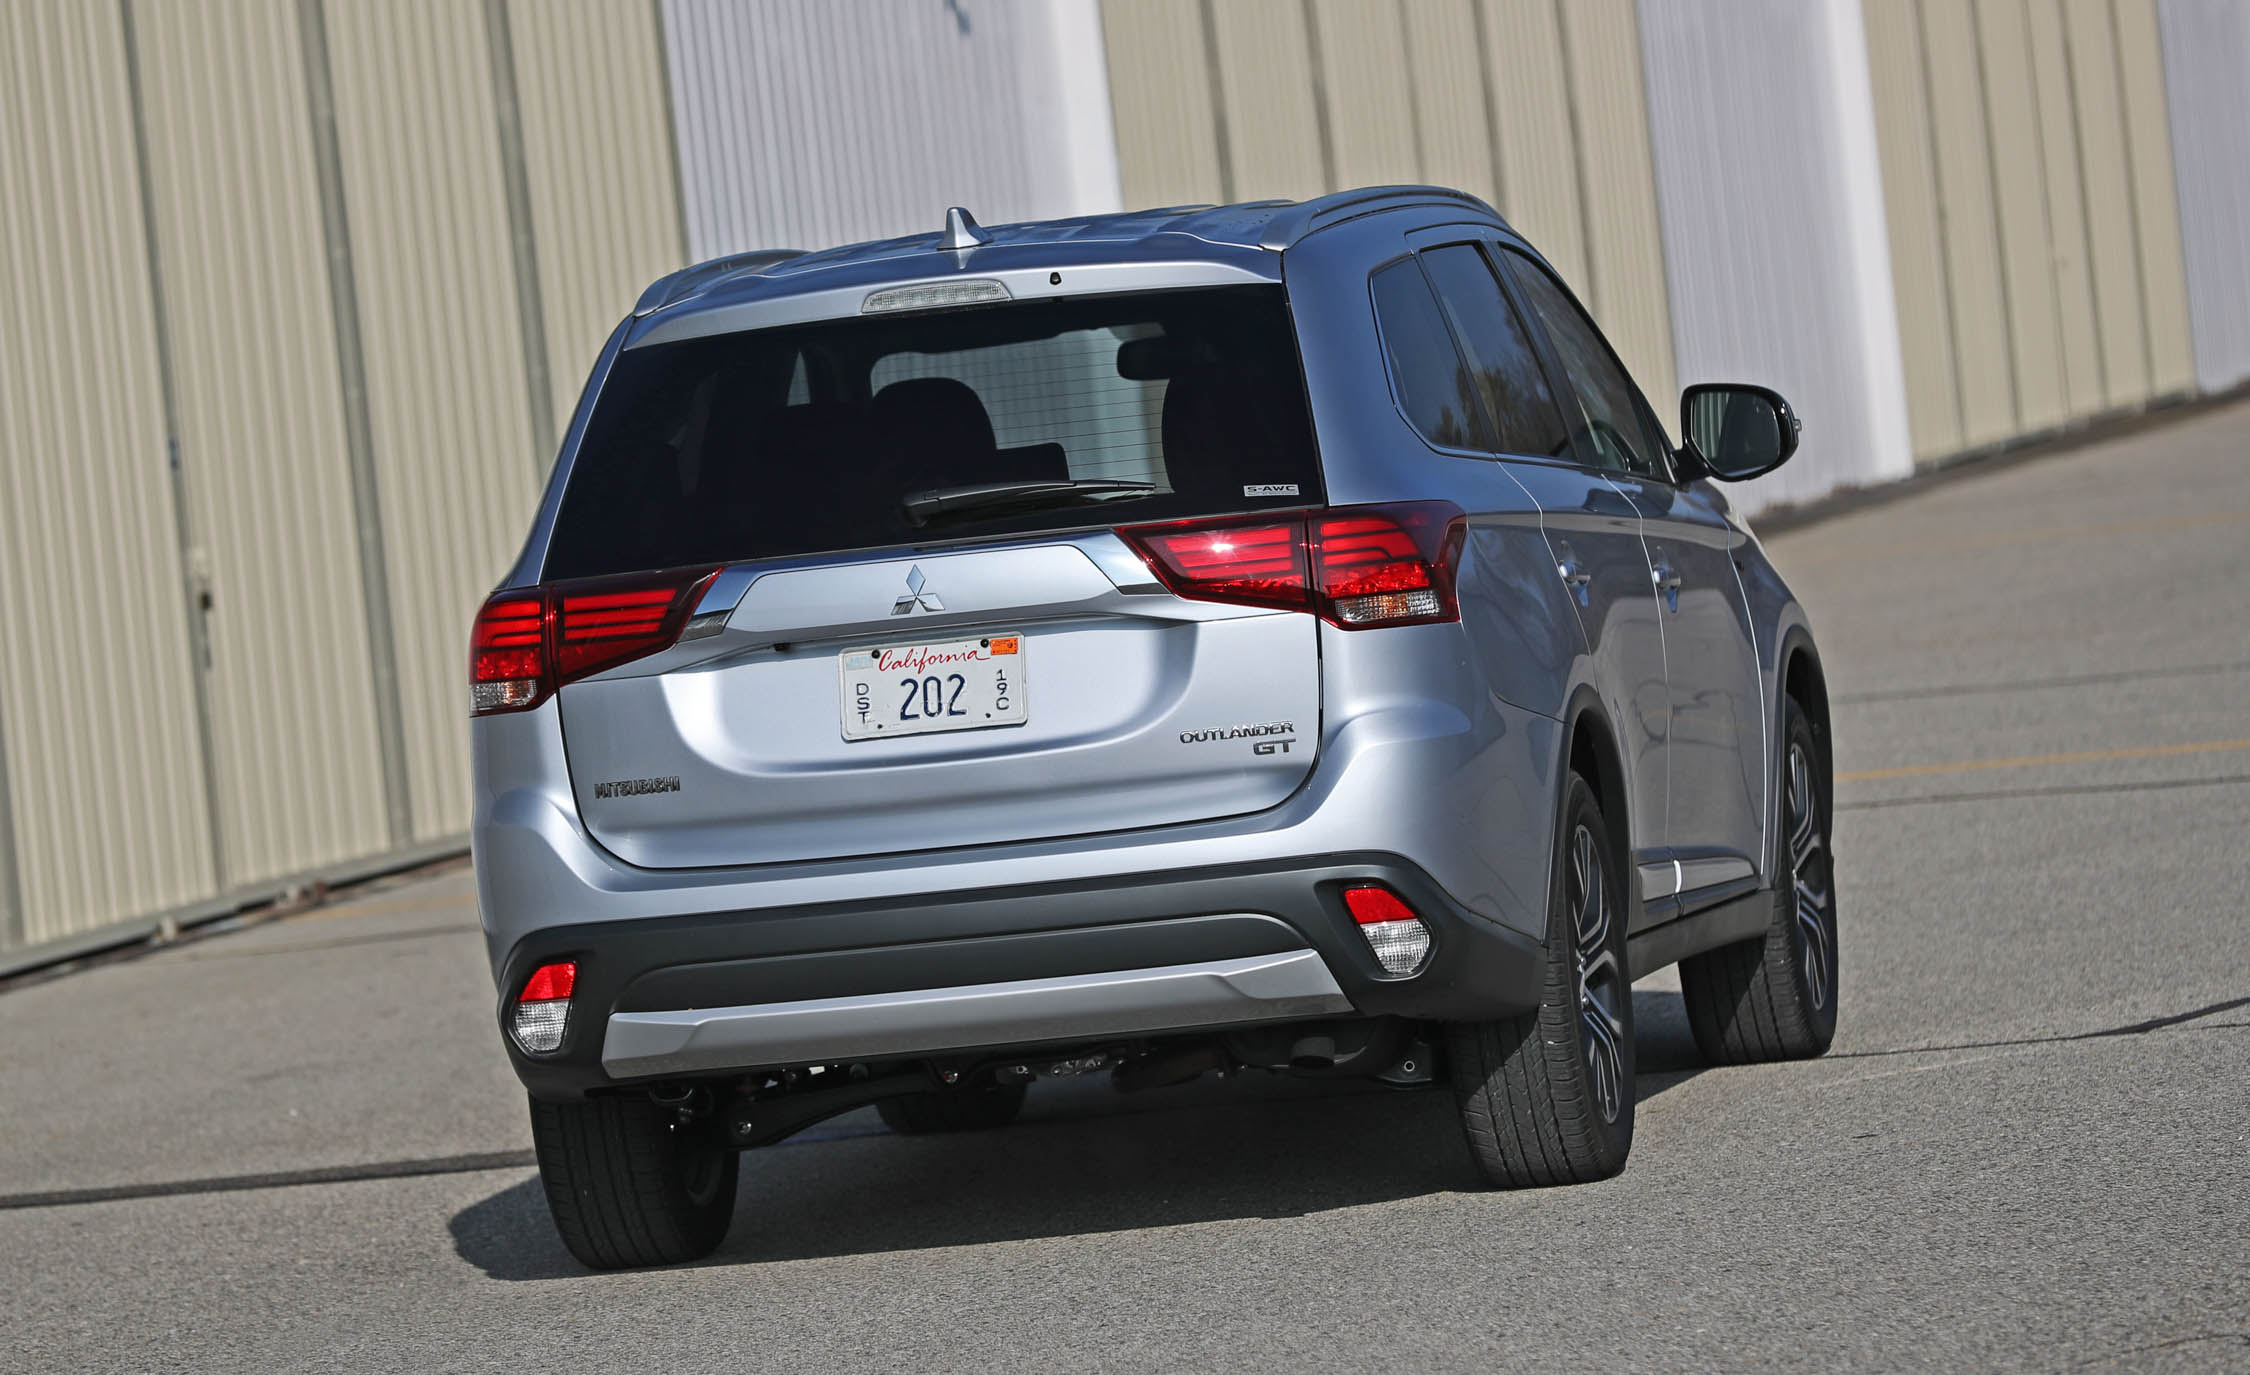 2017 Mitsubishi Outlander Gt Exterior Rear (View 27 of 34)